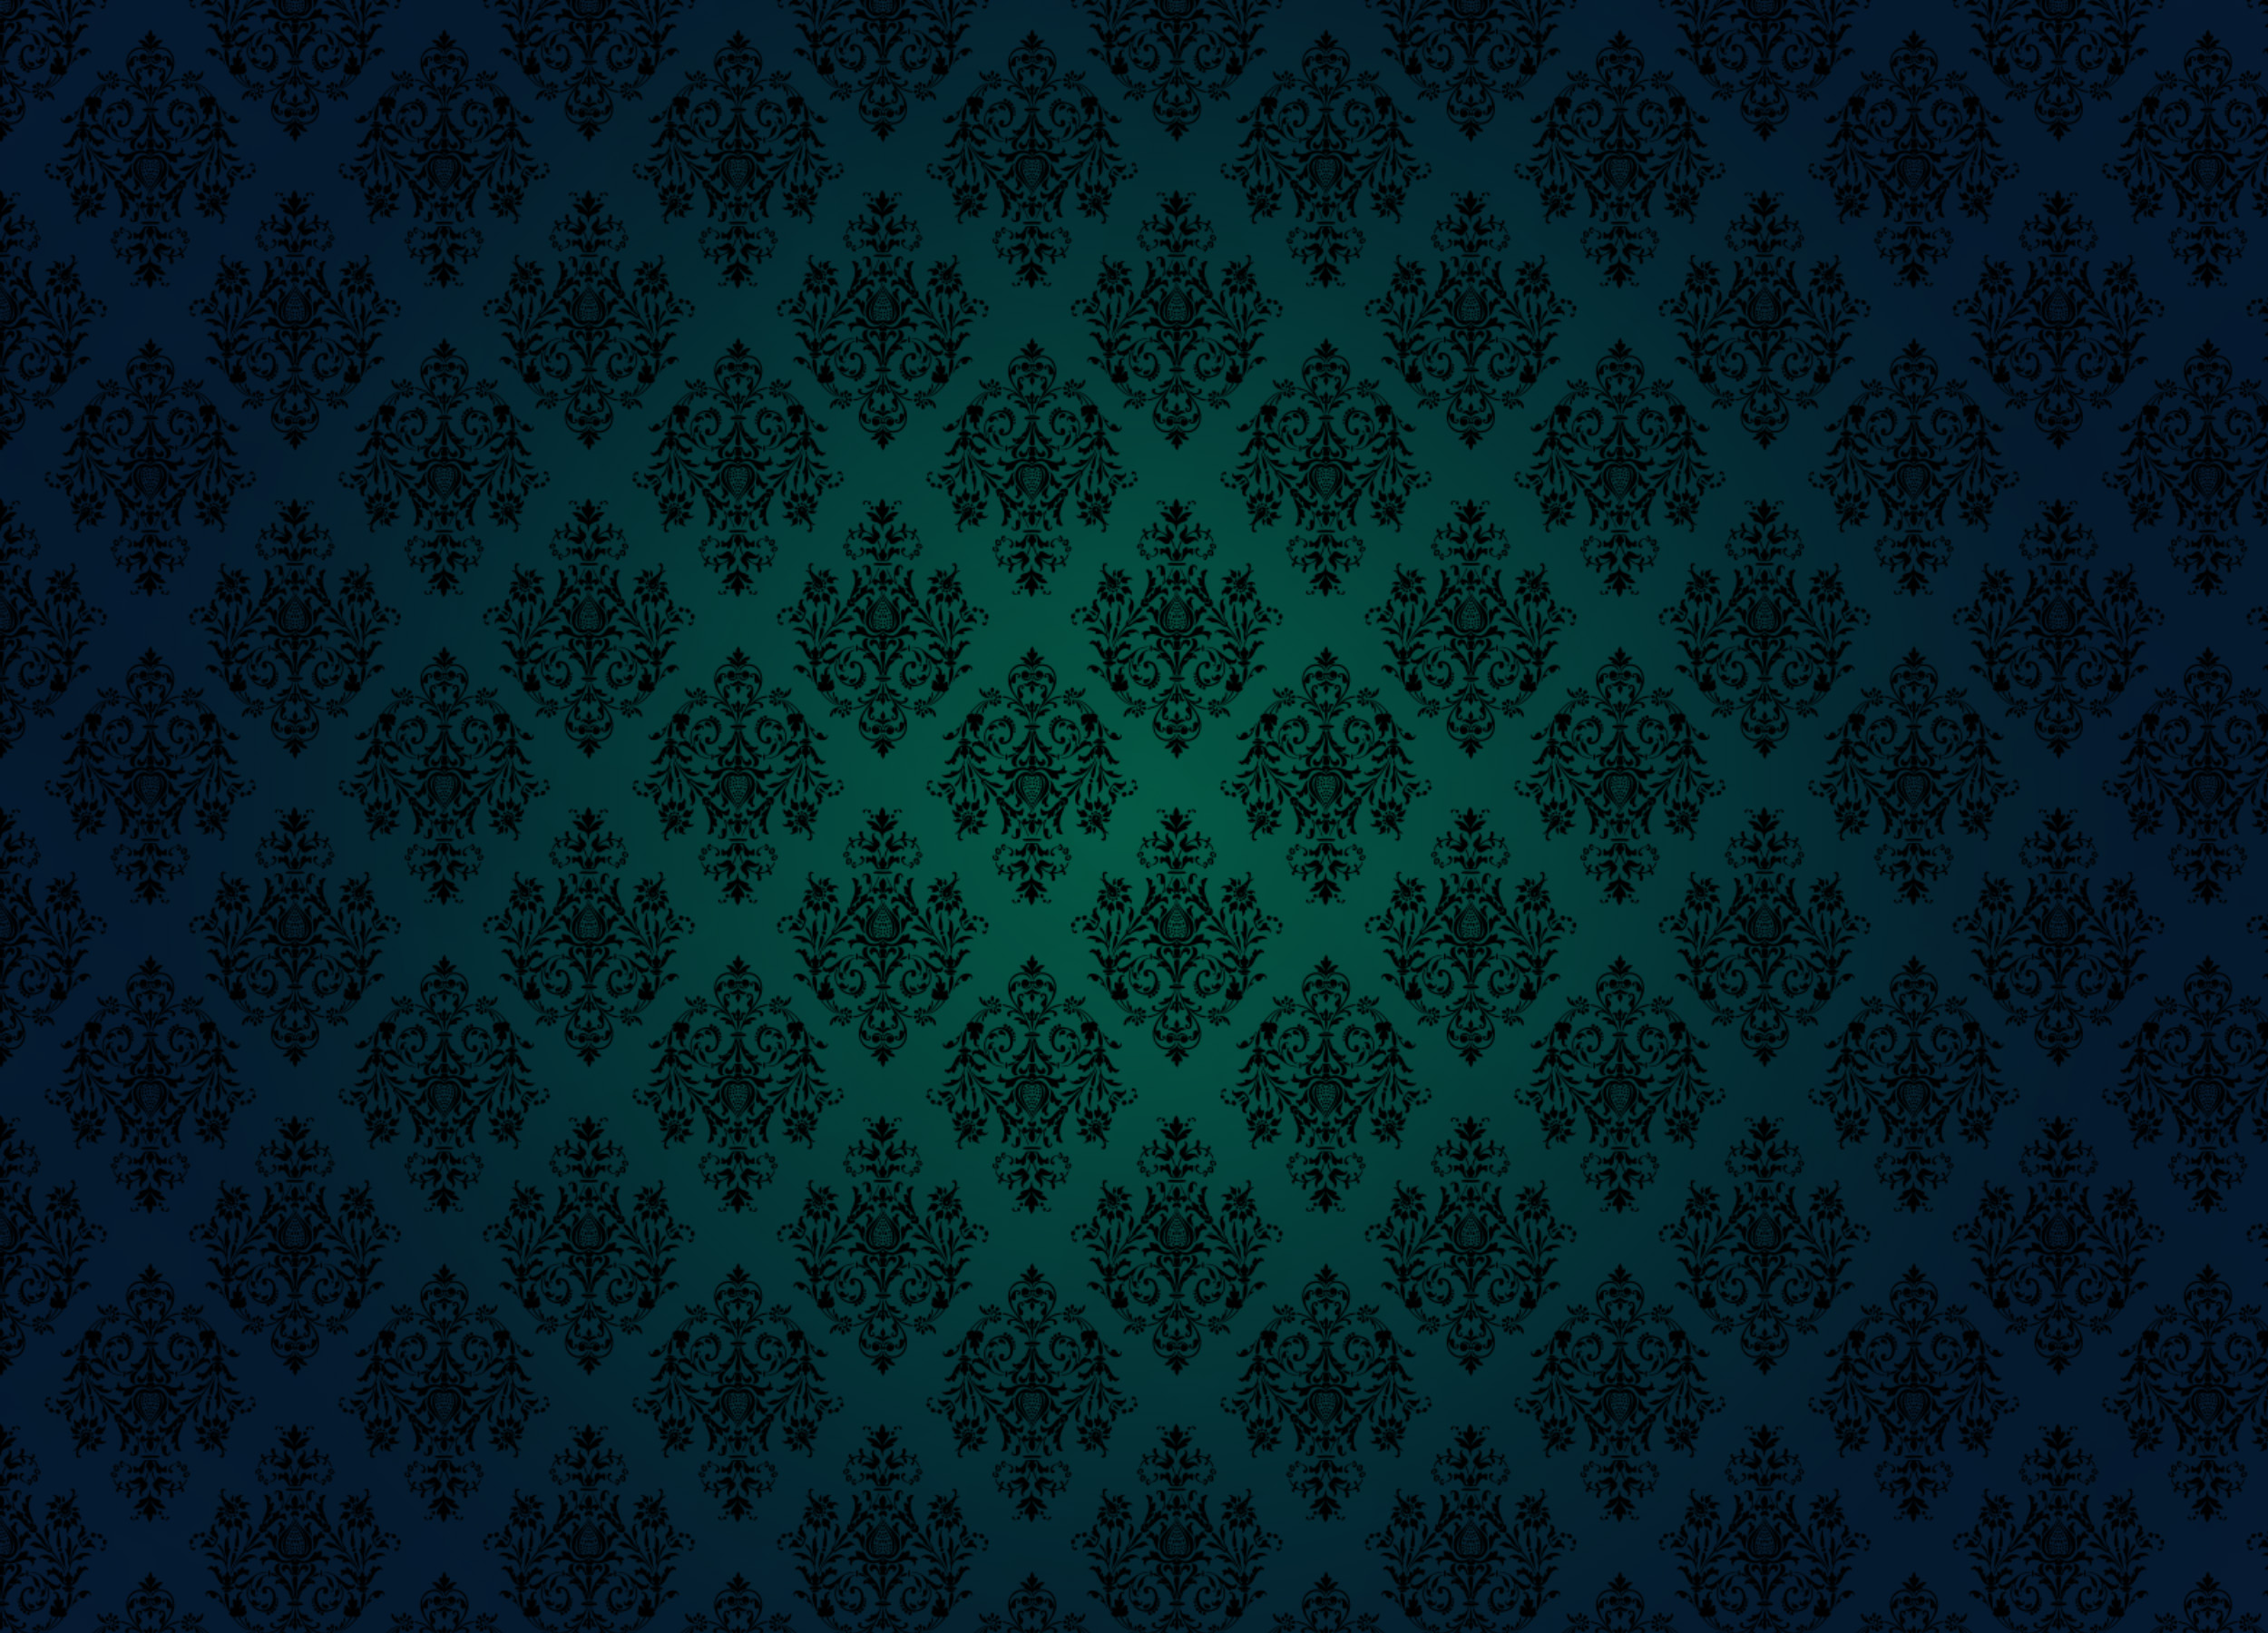 Pattern Hd Wallpaper Background Image 2500x1800 Id